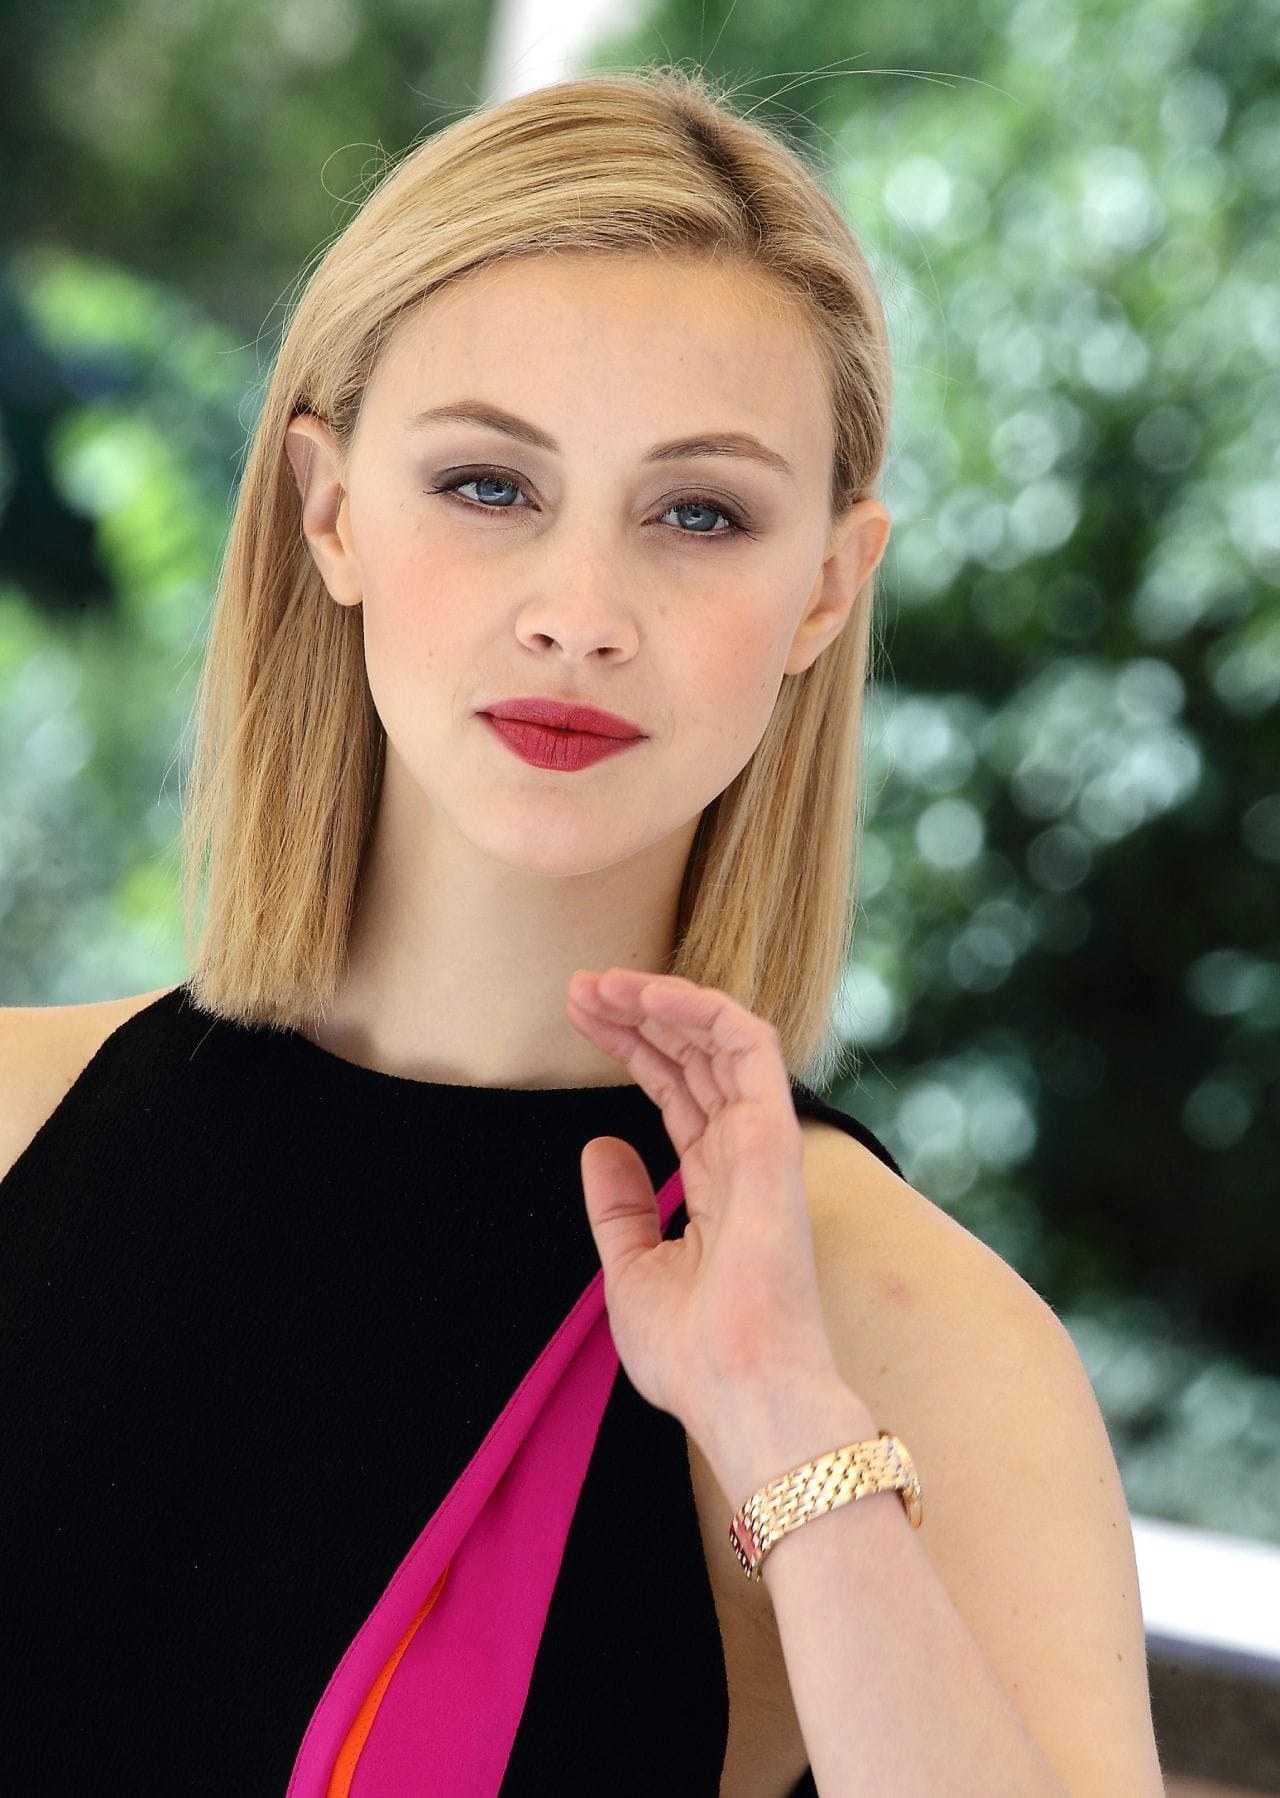 Sarah Gadons Wallpapers